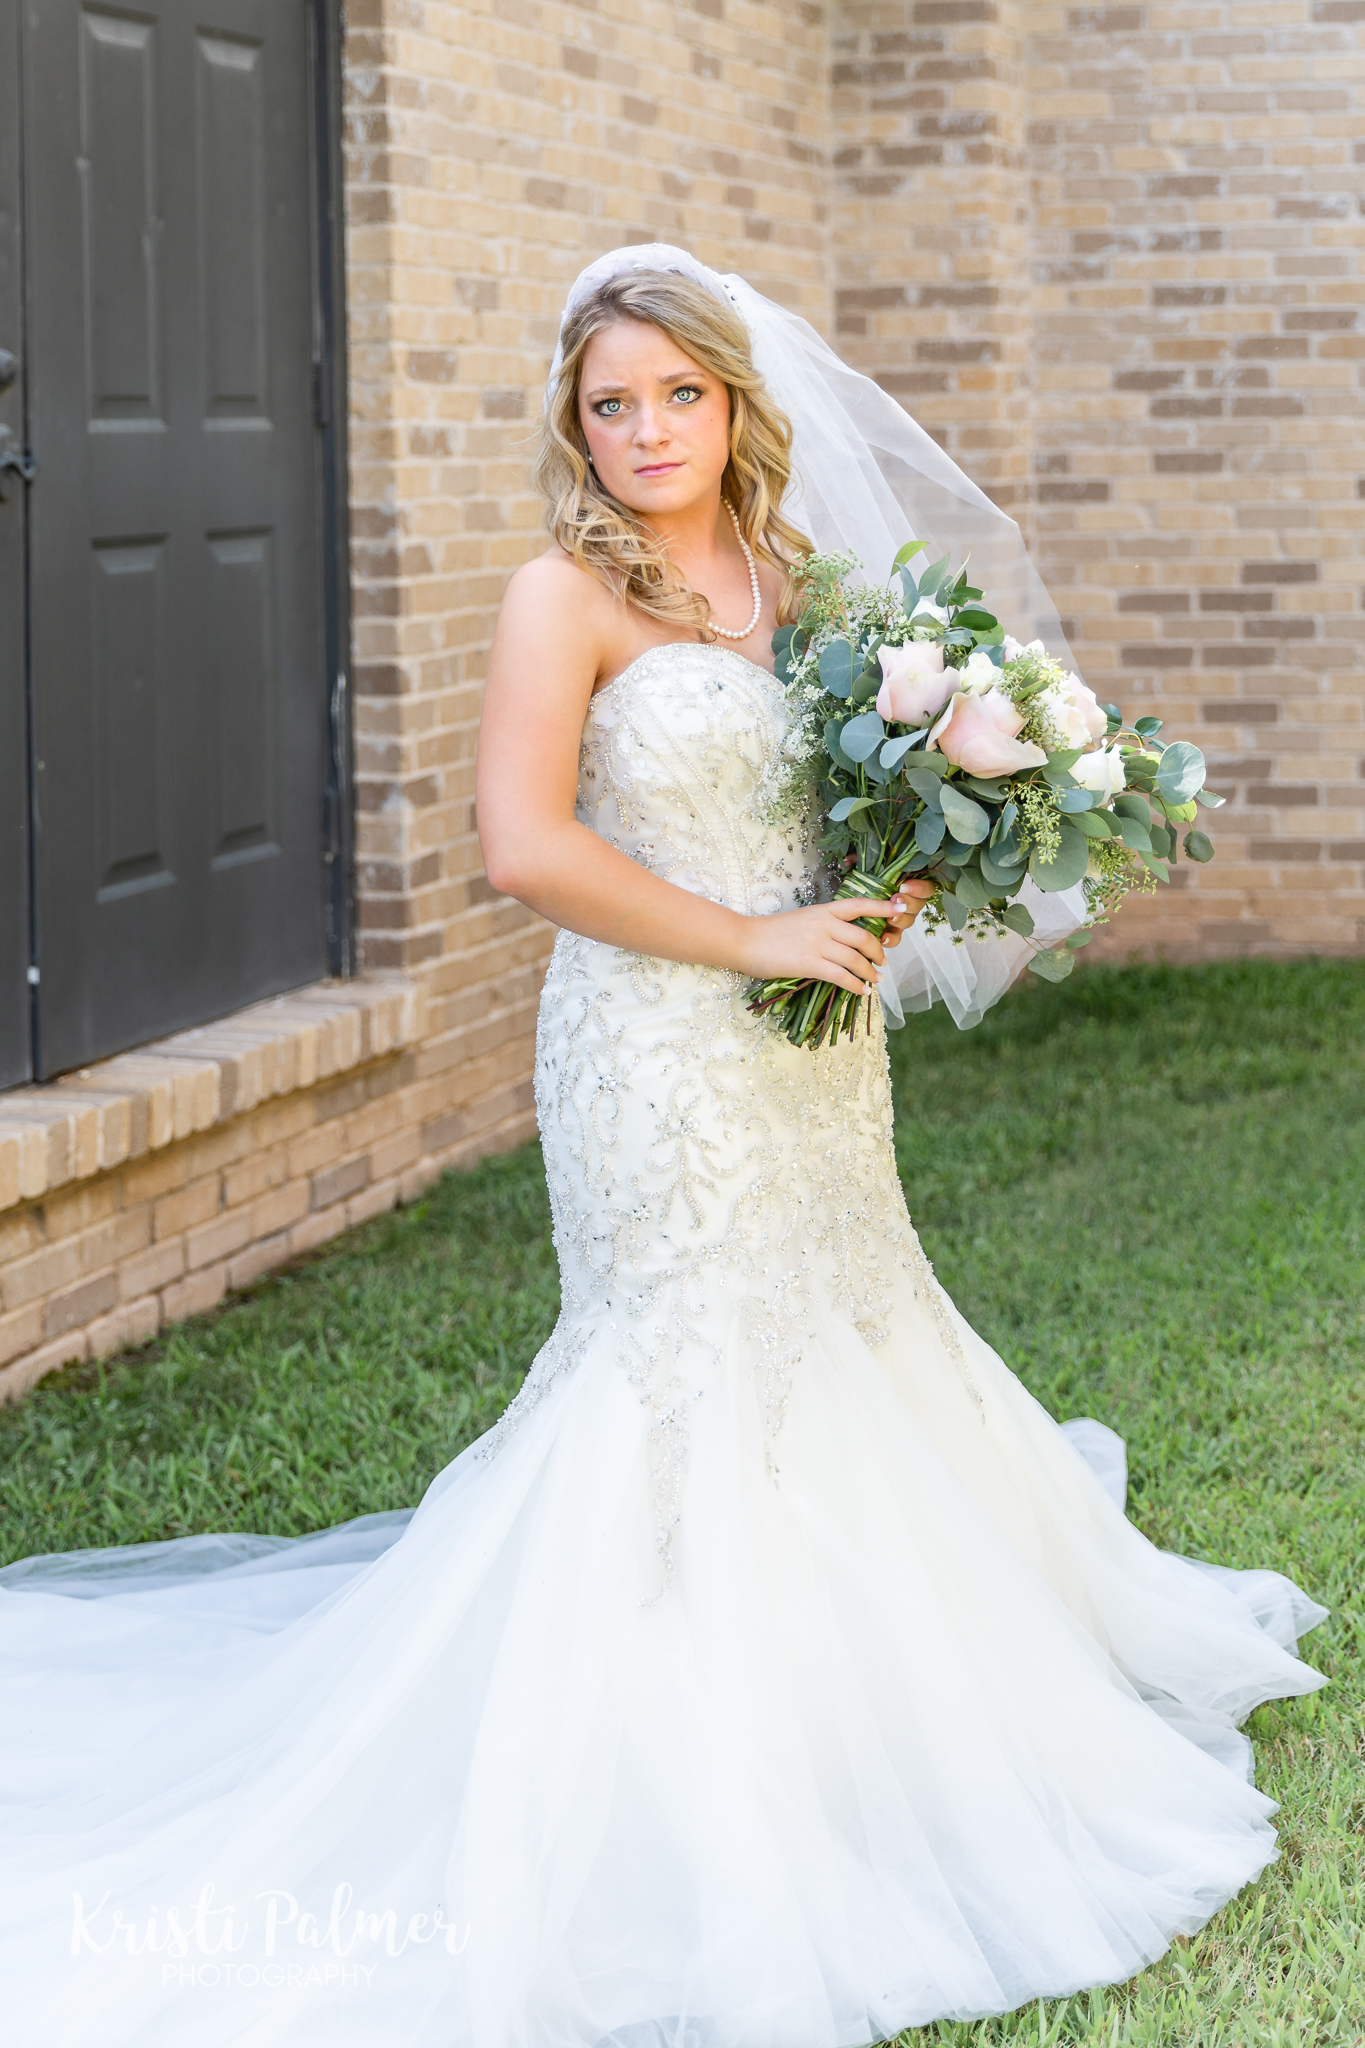 BarretWeddingSM-70.jpg